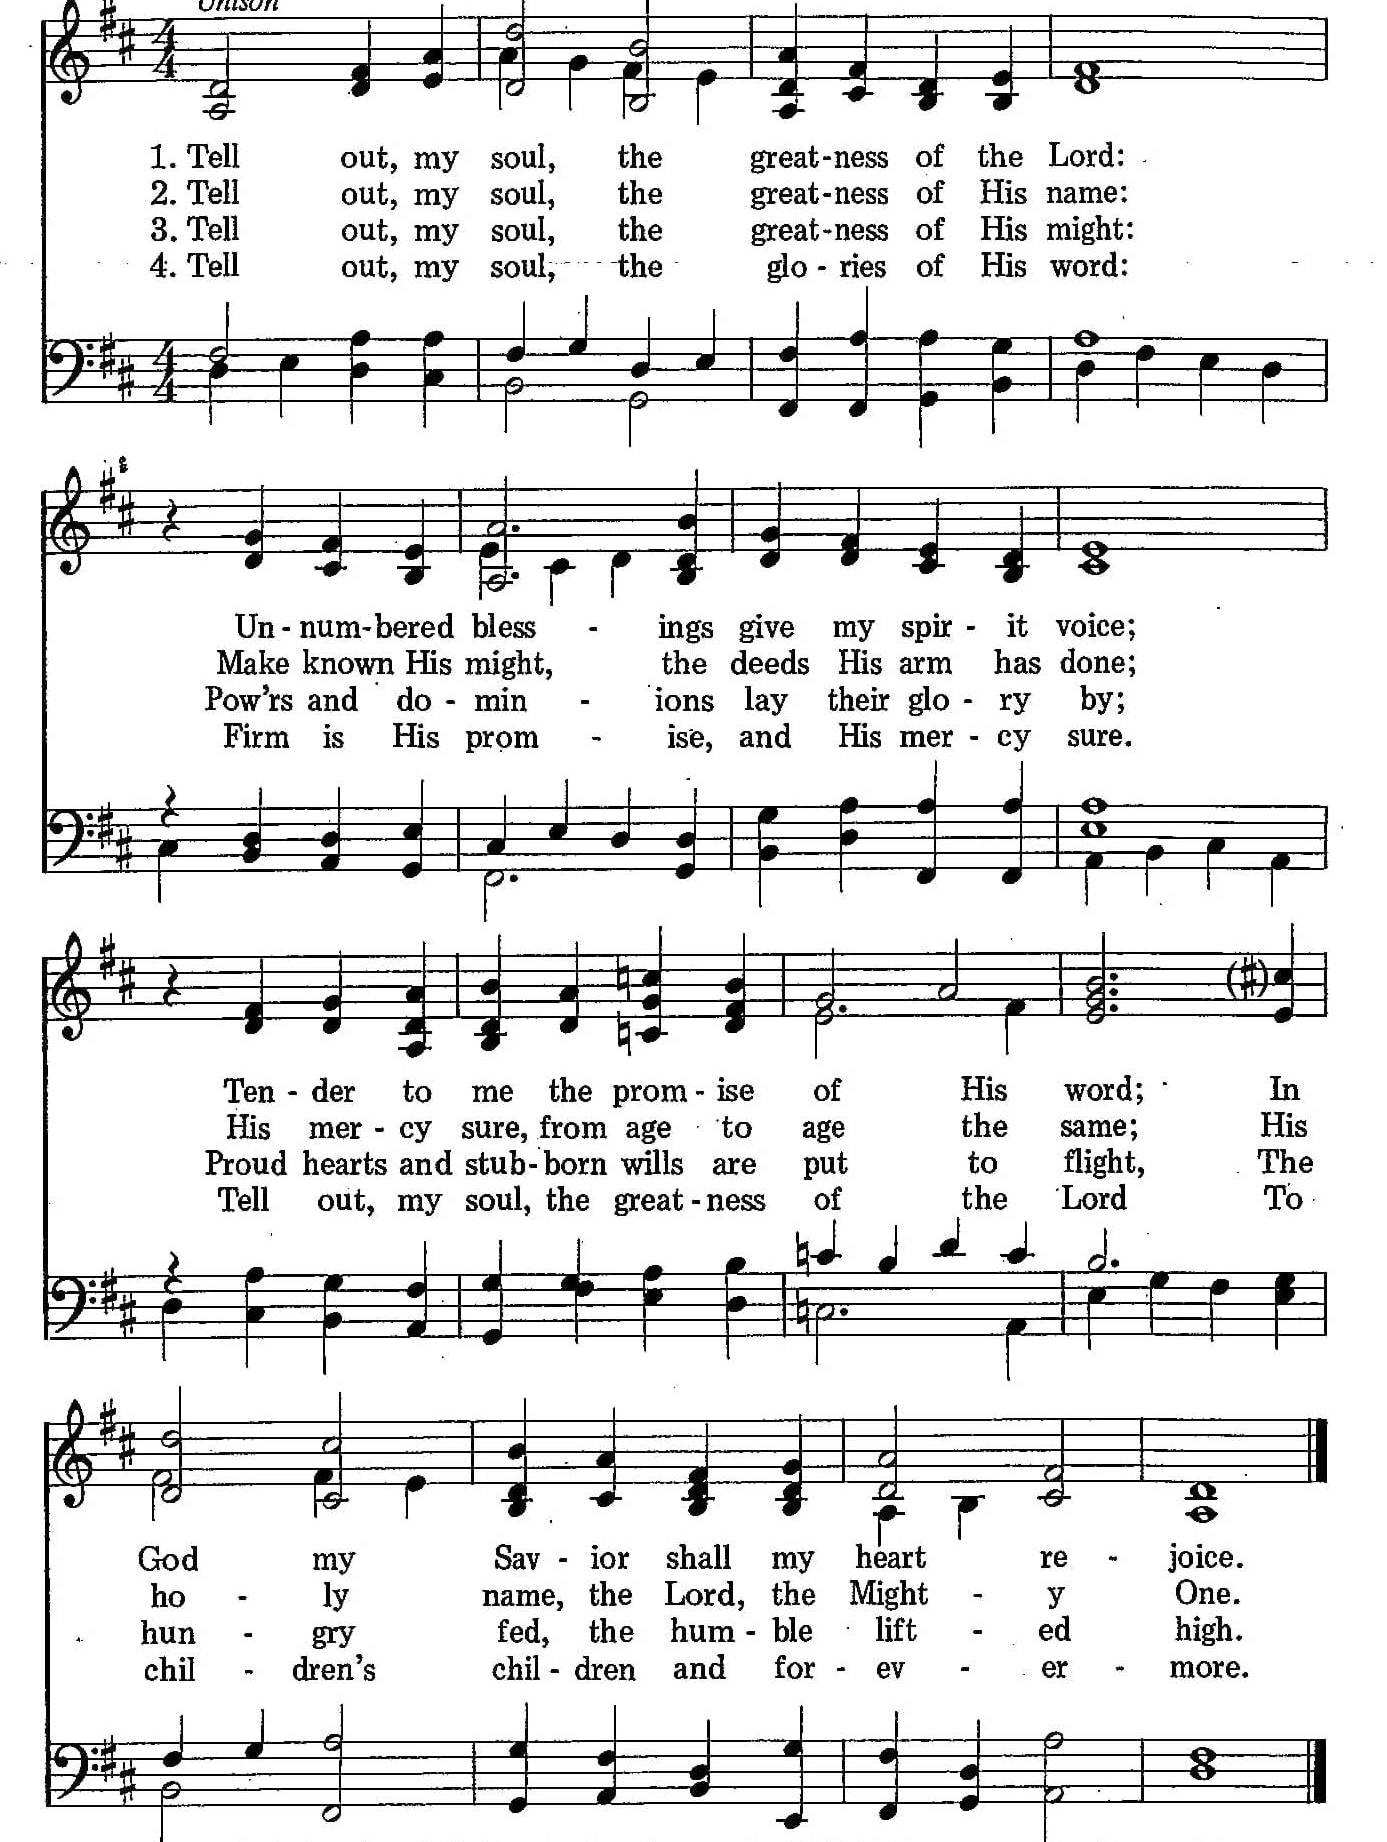 031 – Tell Out, My Soul sheet music